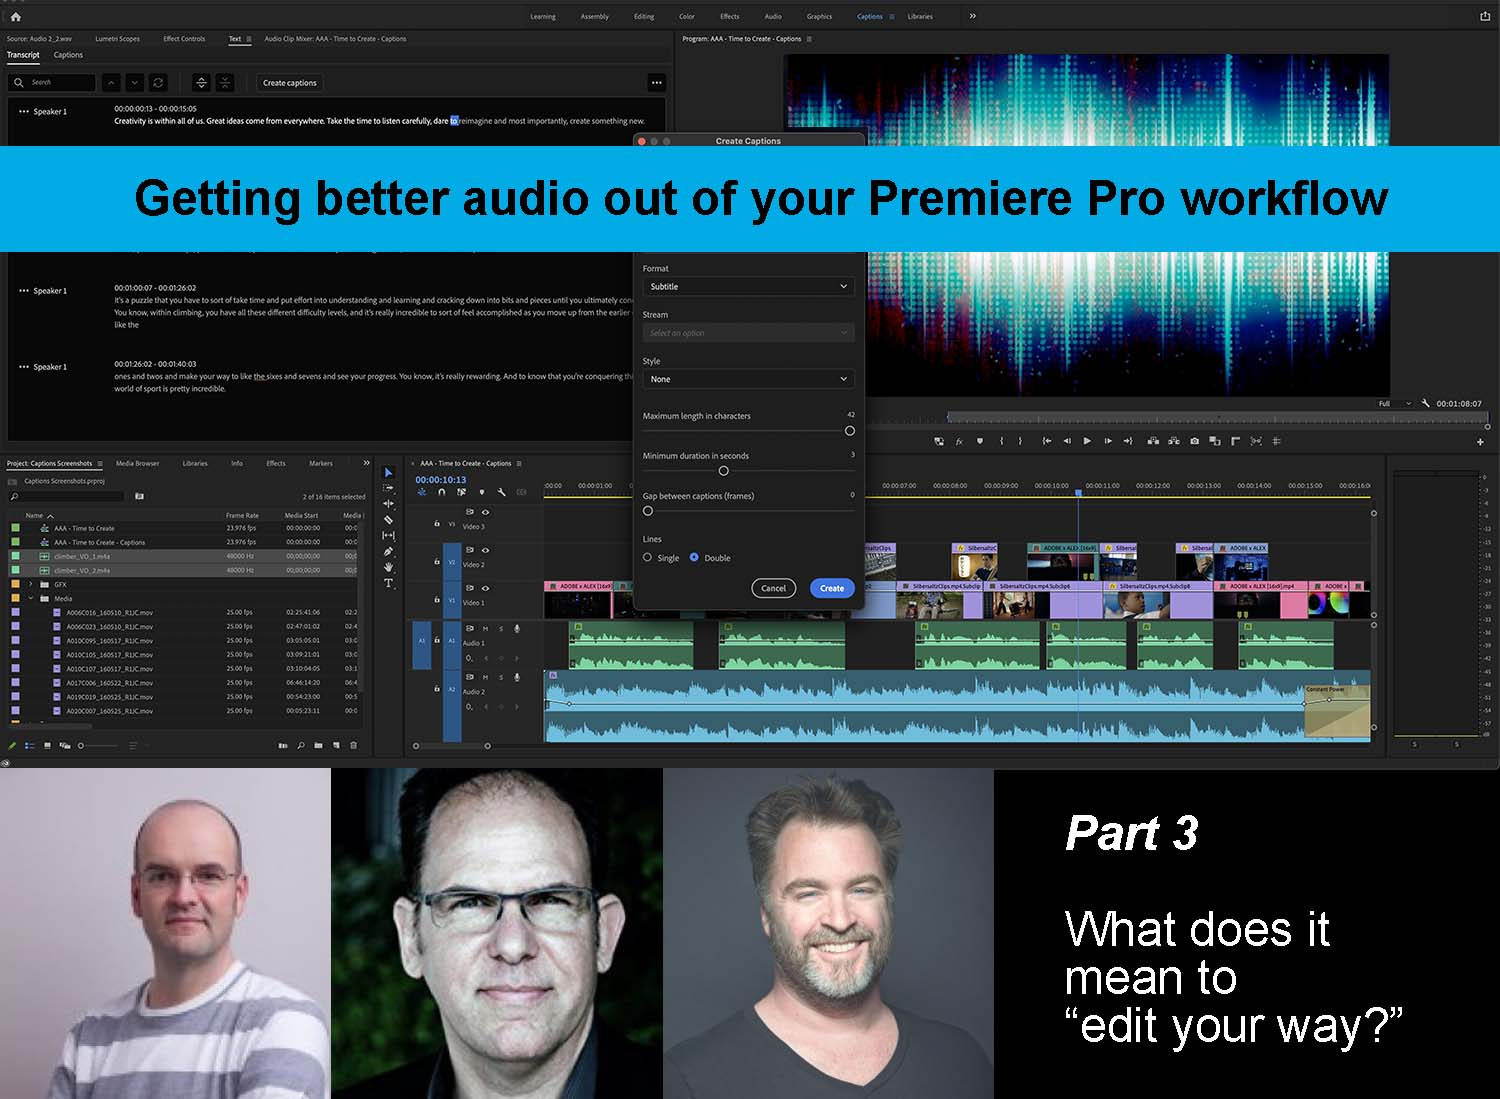 """Clip mixing and track mixing capabilities highlight what it means for editors to """"edit your way"""" 2"""